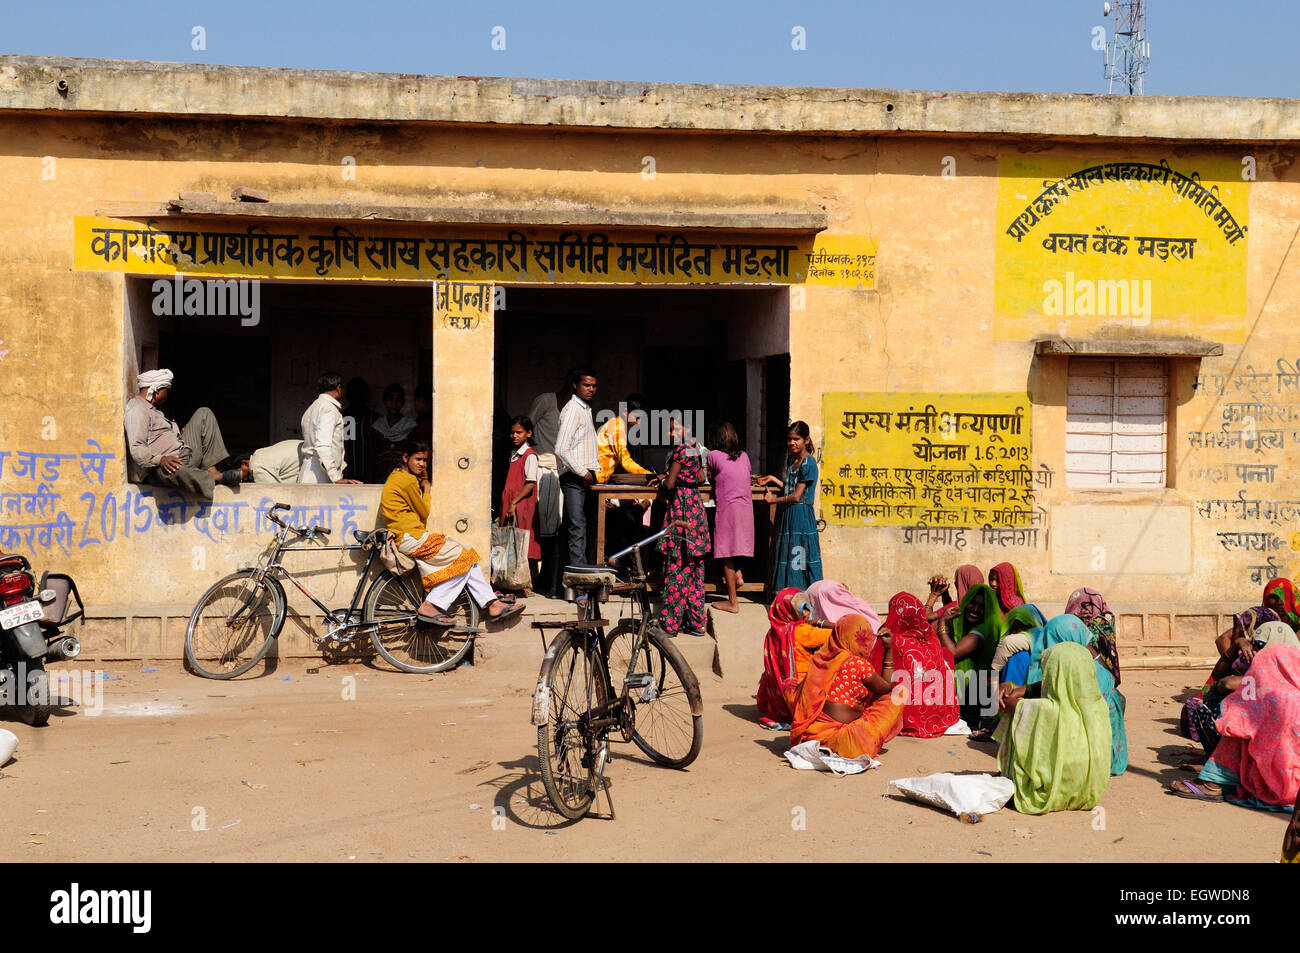 Indian food distribution center  for poor people Madhya Pradesh India - Stock Image